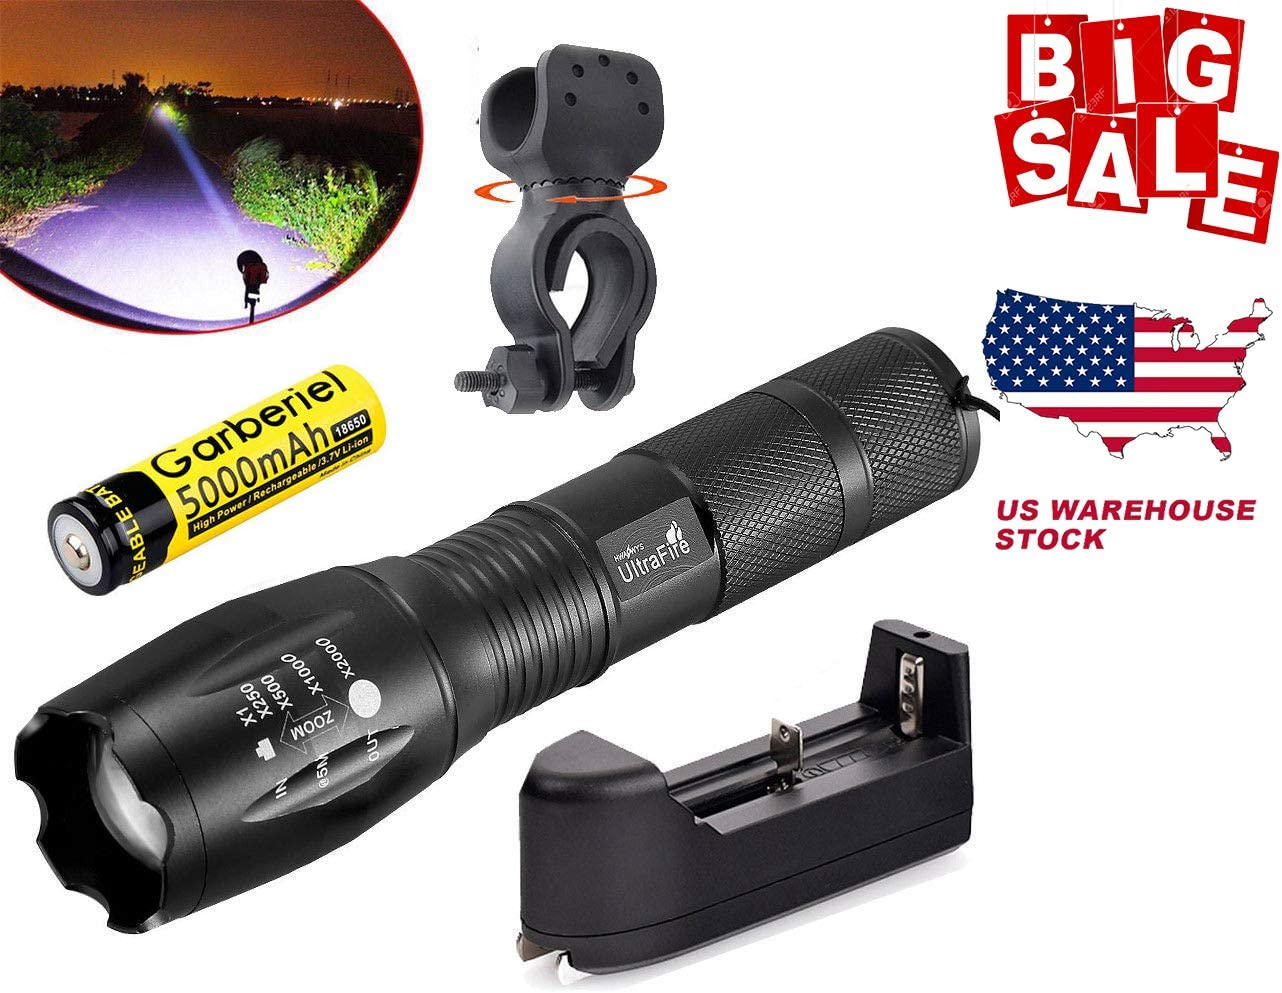 UltraFire Ultrafire Tactical 15000LM T6 Power LED Zoomable Flashlight 18650 Charger USA 1x Torch 1x Battery 1x Charger 1xBicycle Clip